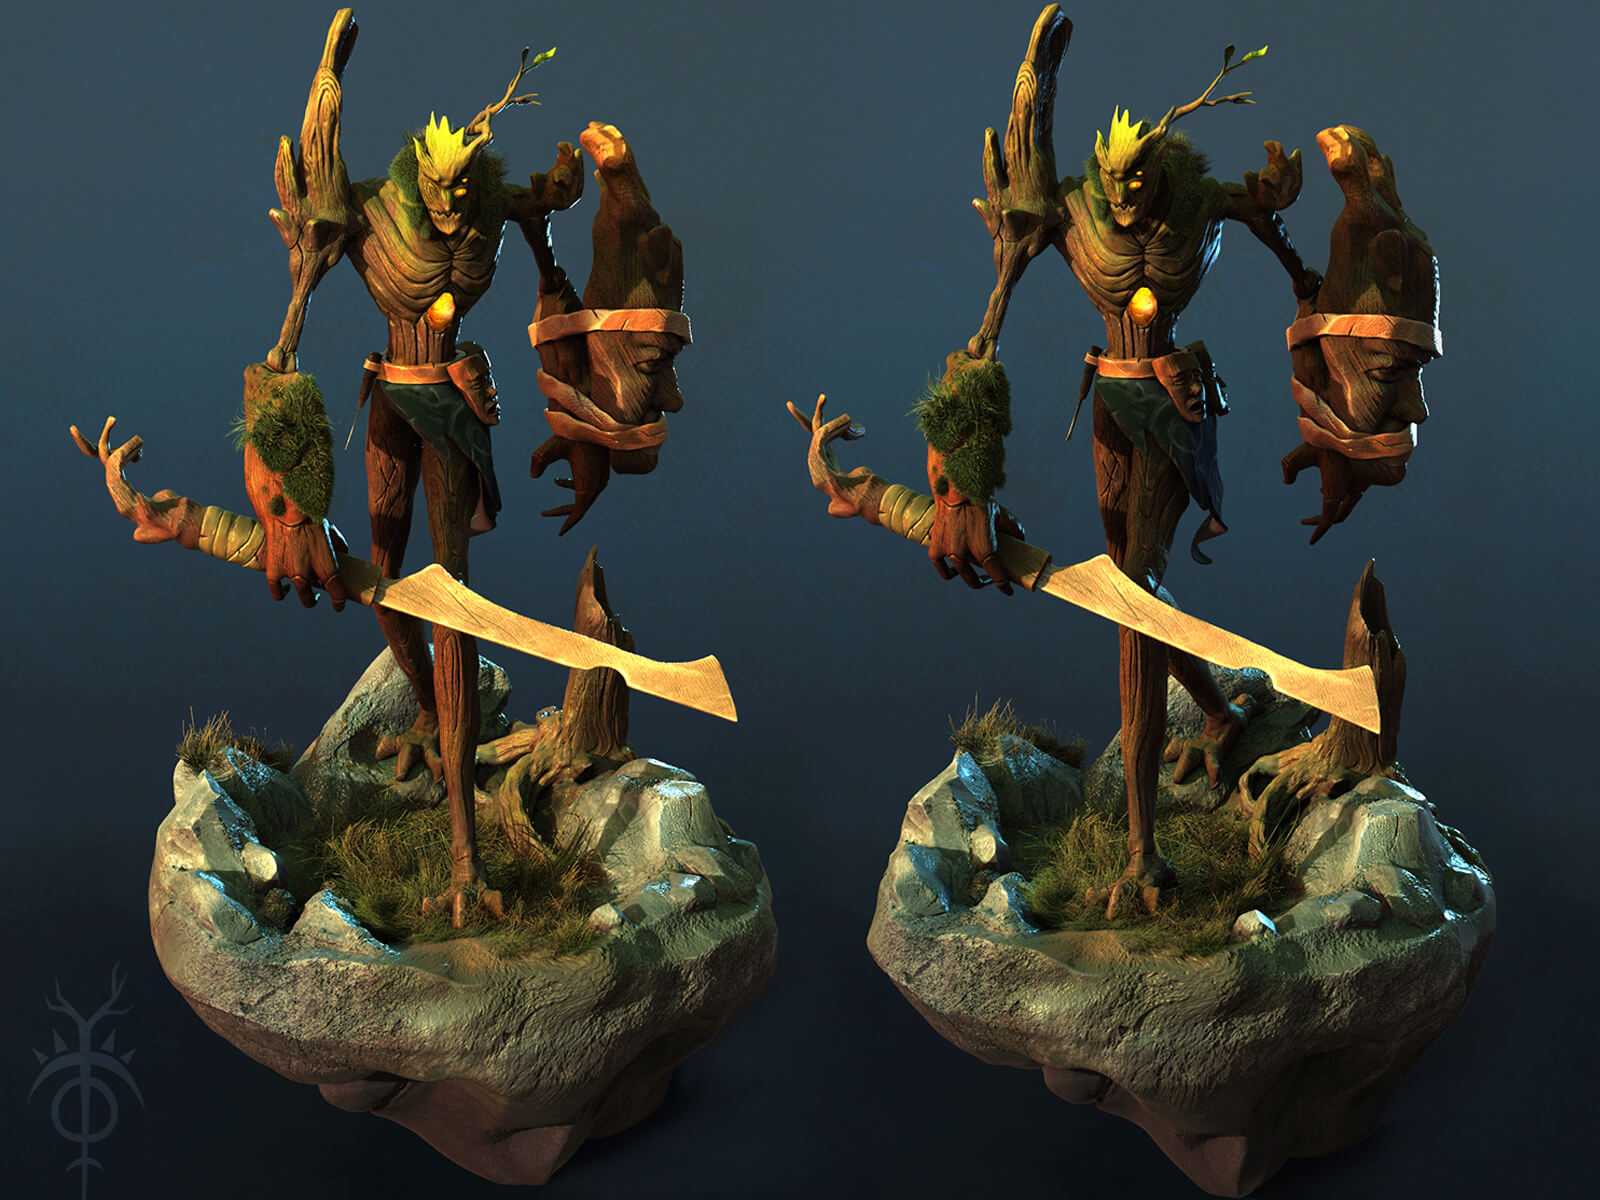 Multiple views of a wooden creature carrying a wooden sword